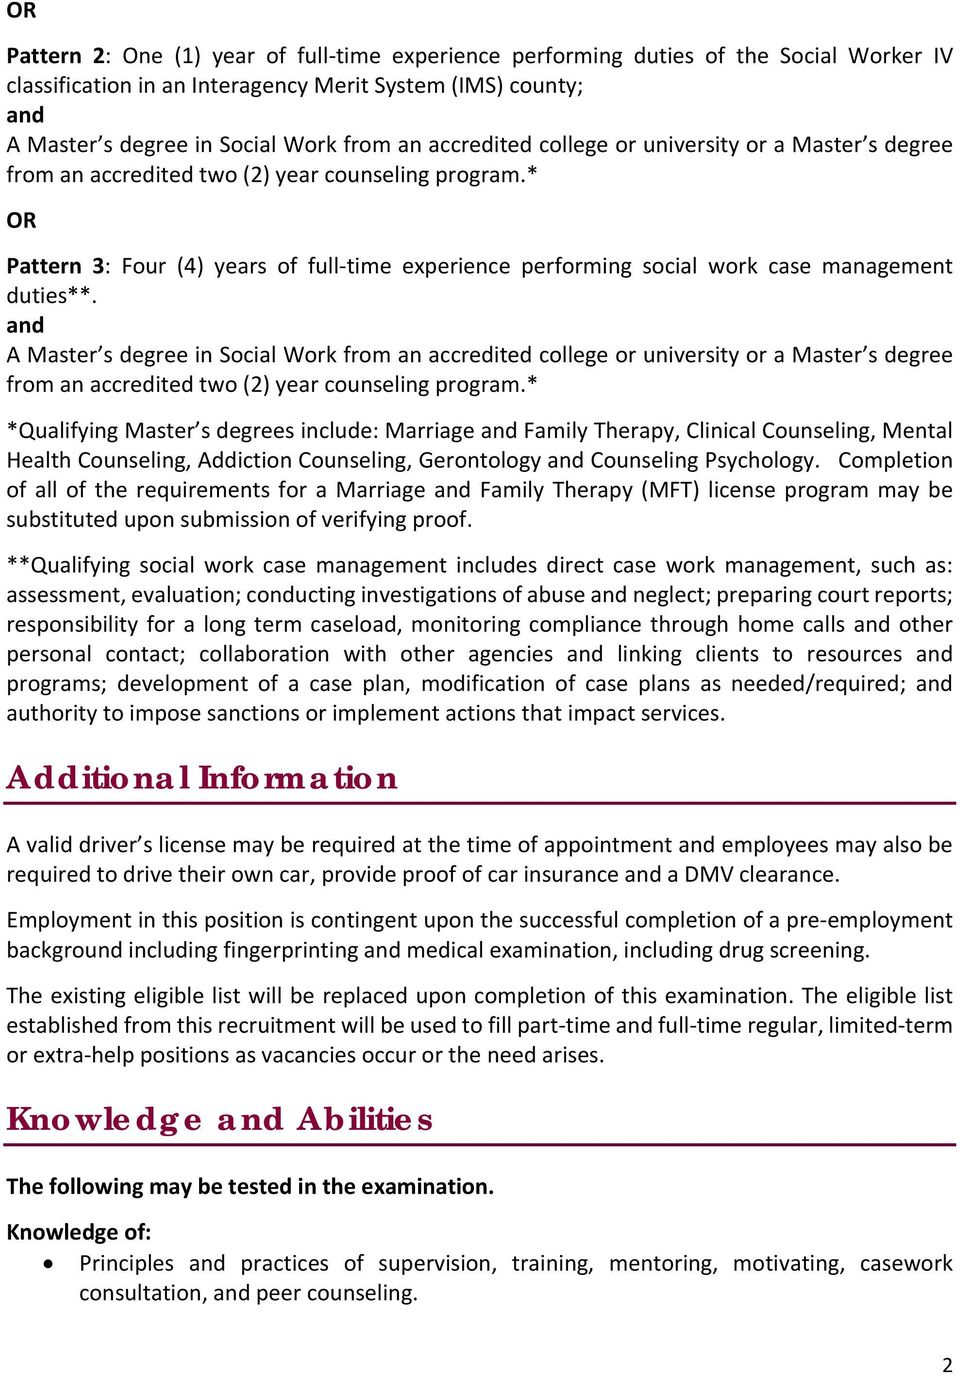 * OR Pattern 3: Four (4) years of full-time experience performing social work case management duties**.